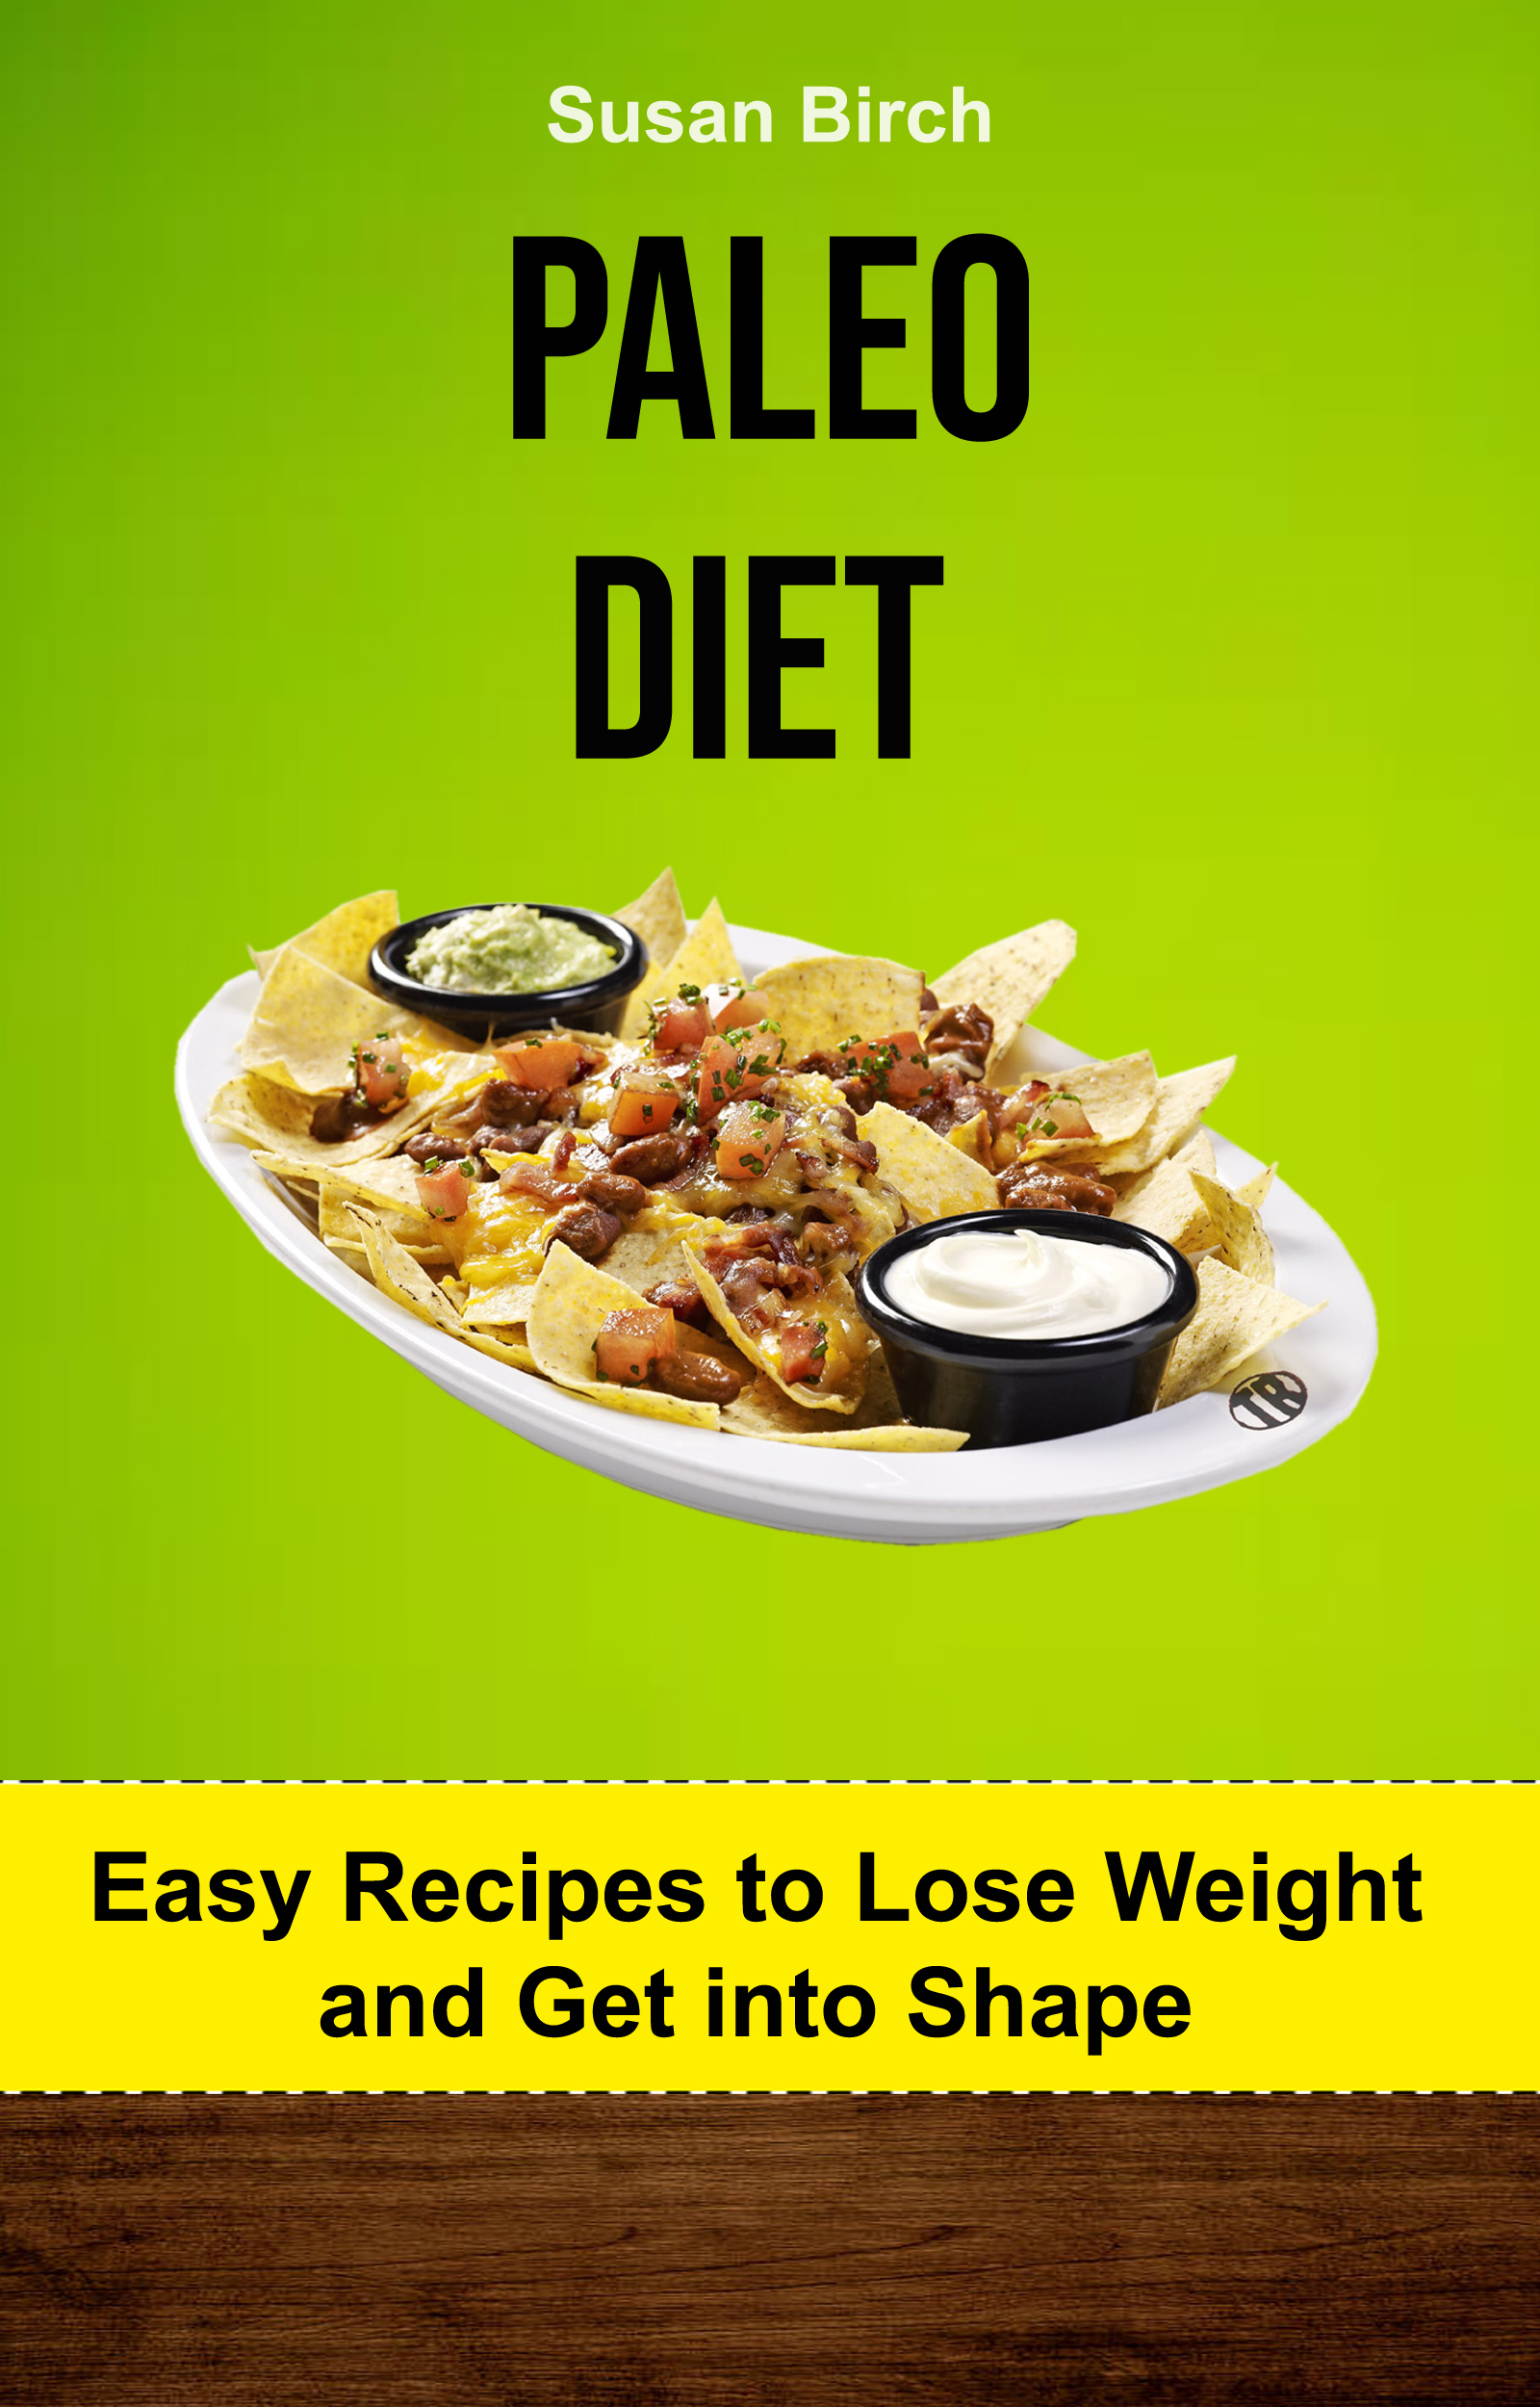 Paleo diet: easy recipes to lose weight and get into shape